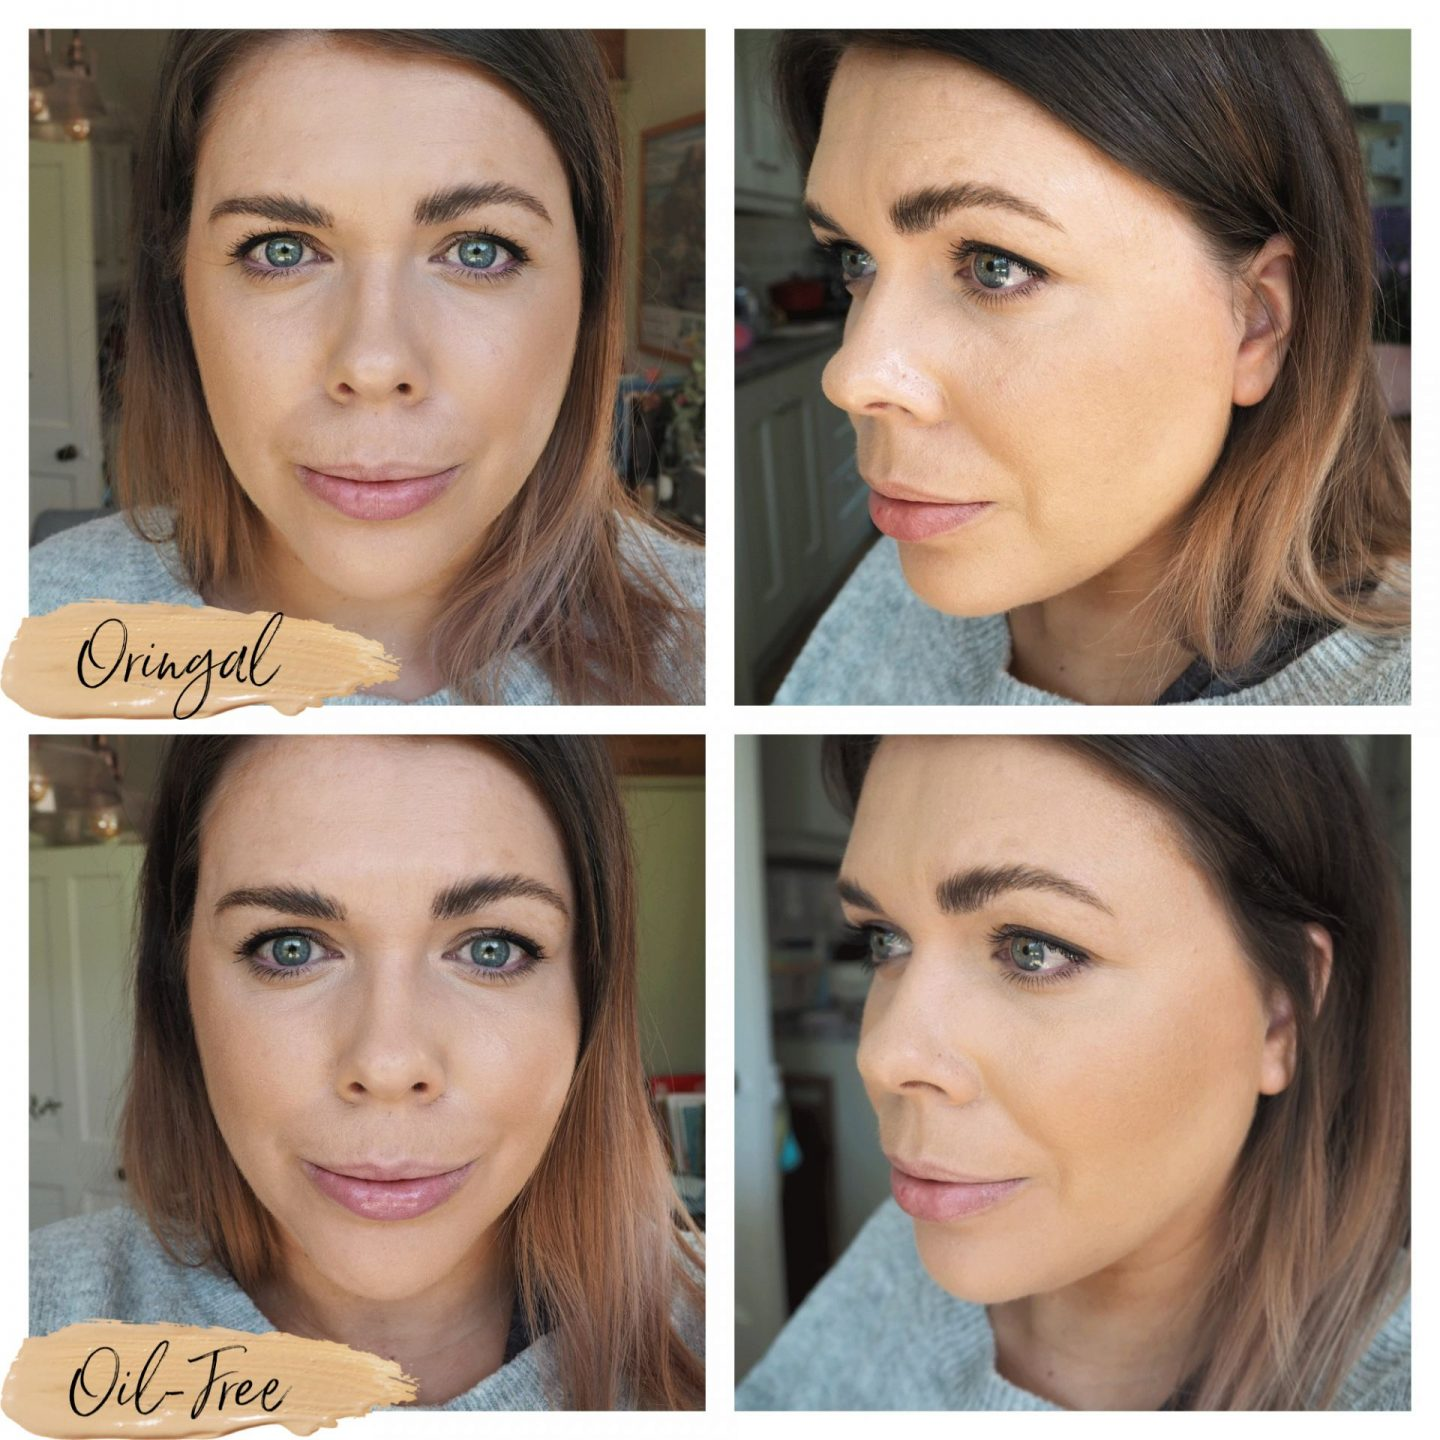 It cosmetics CC cream before and after